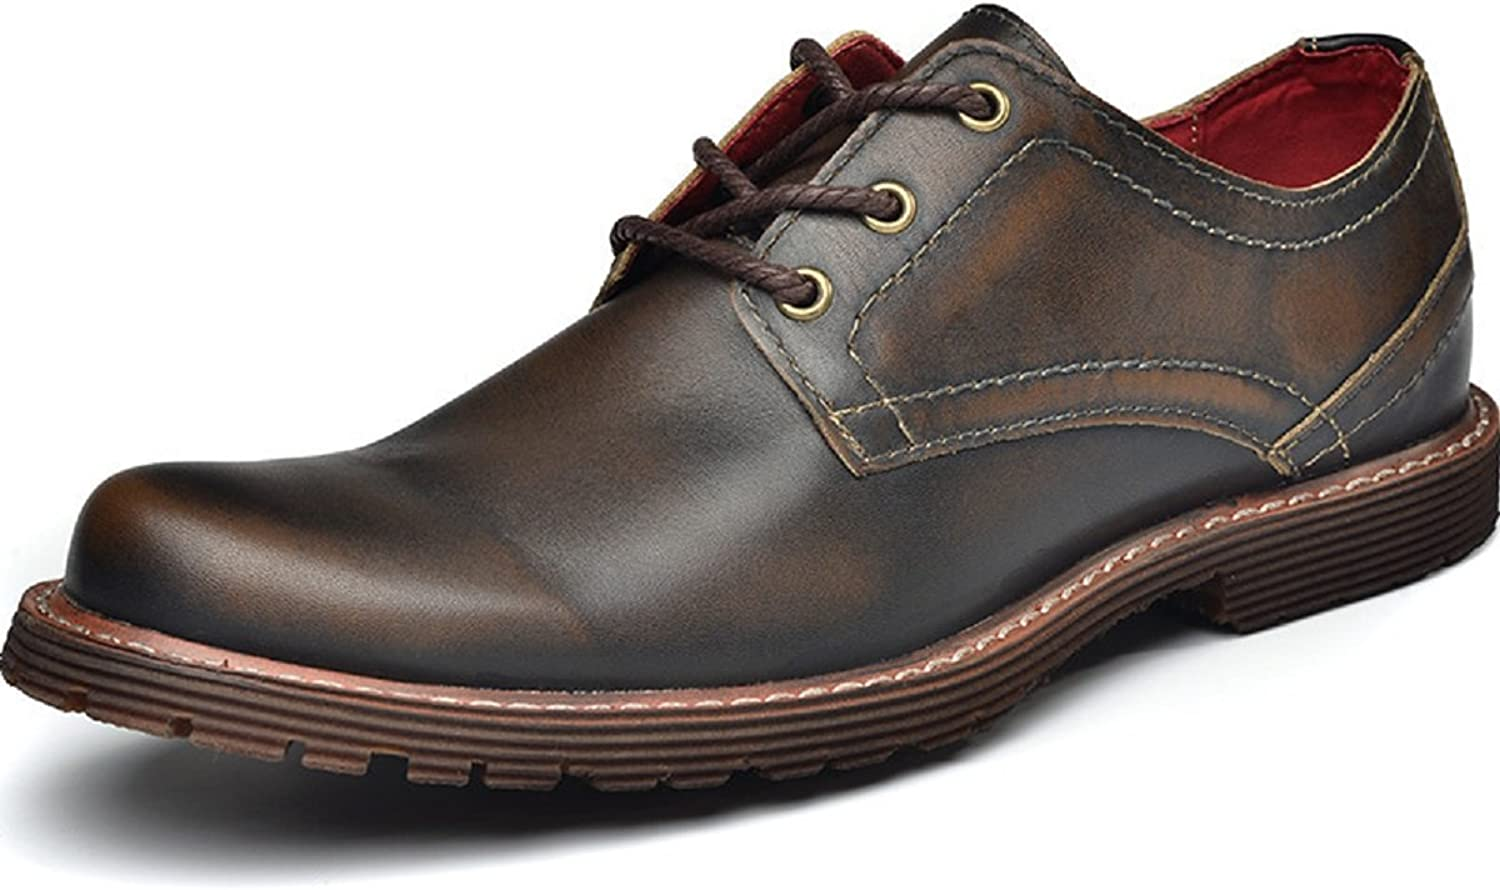 Z.Suo Men's Real Leather Fashion Low Profile shoes Brown color